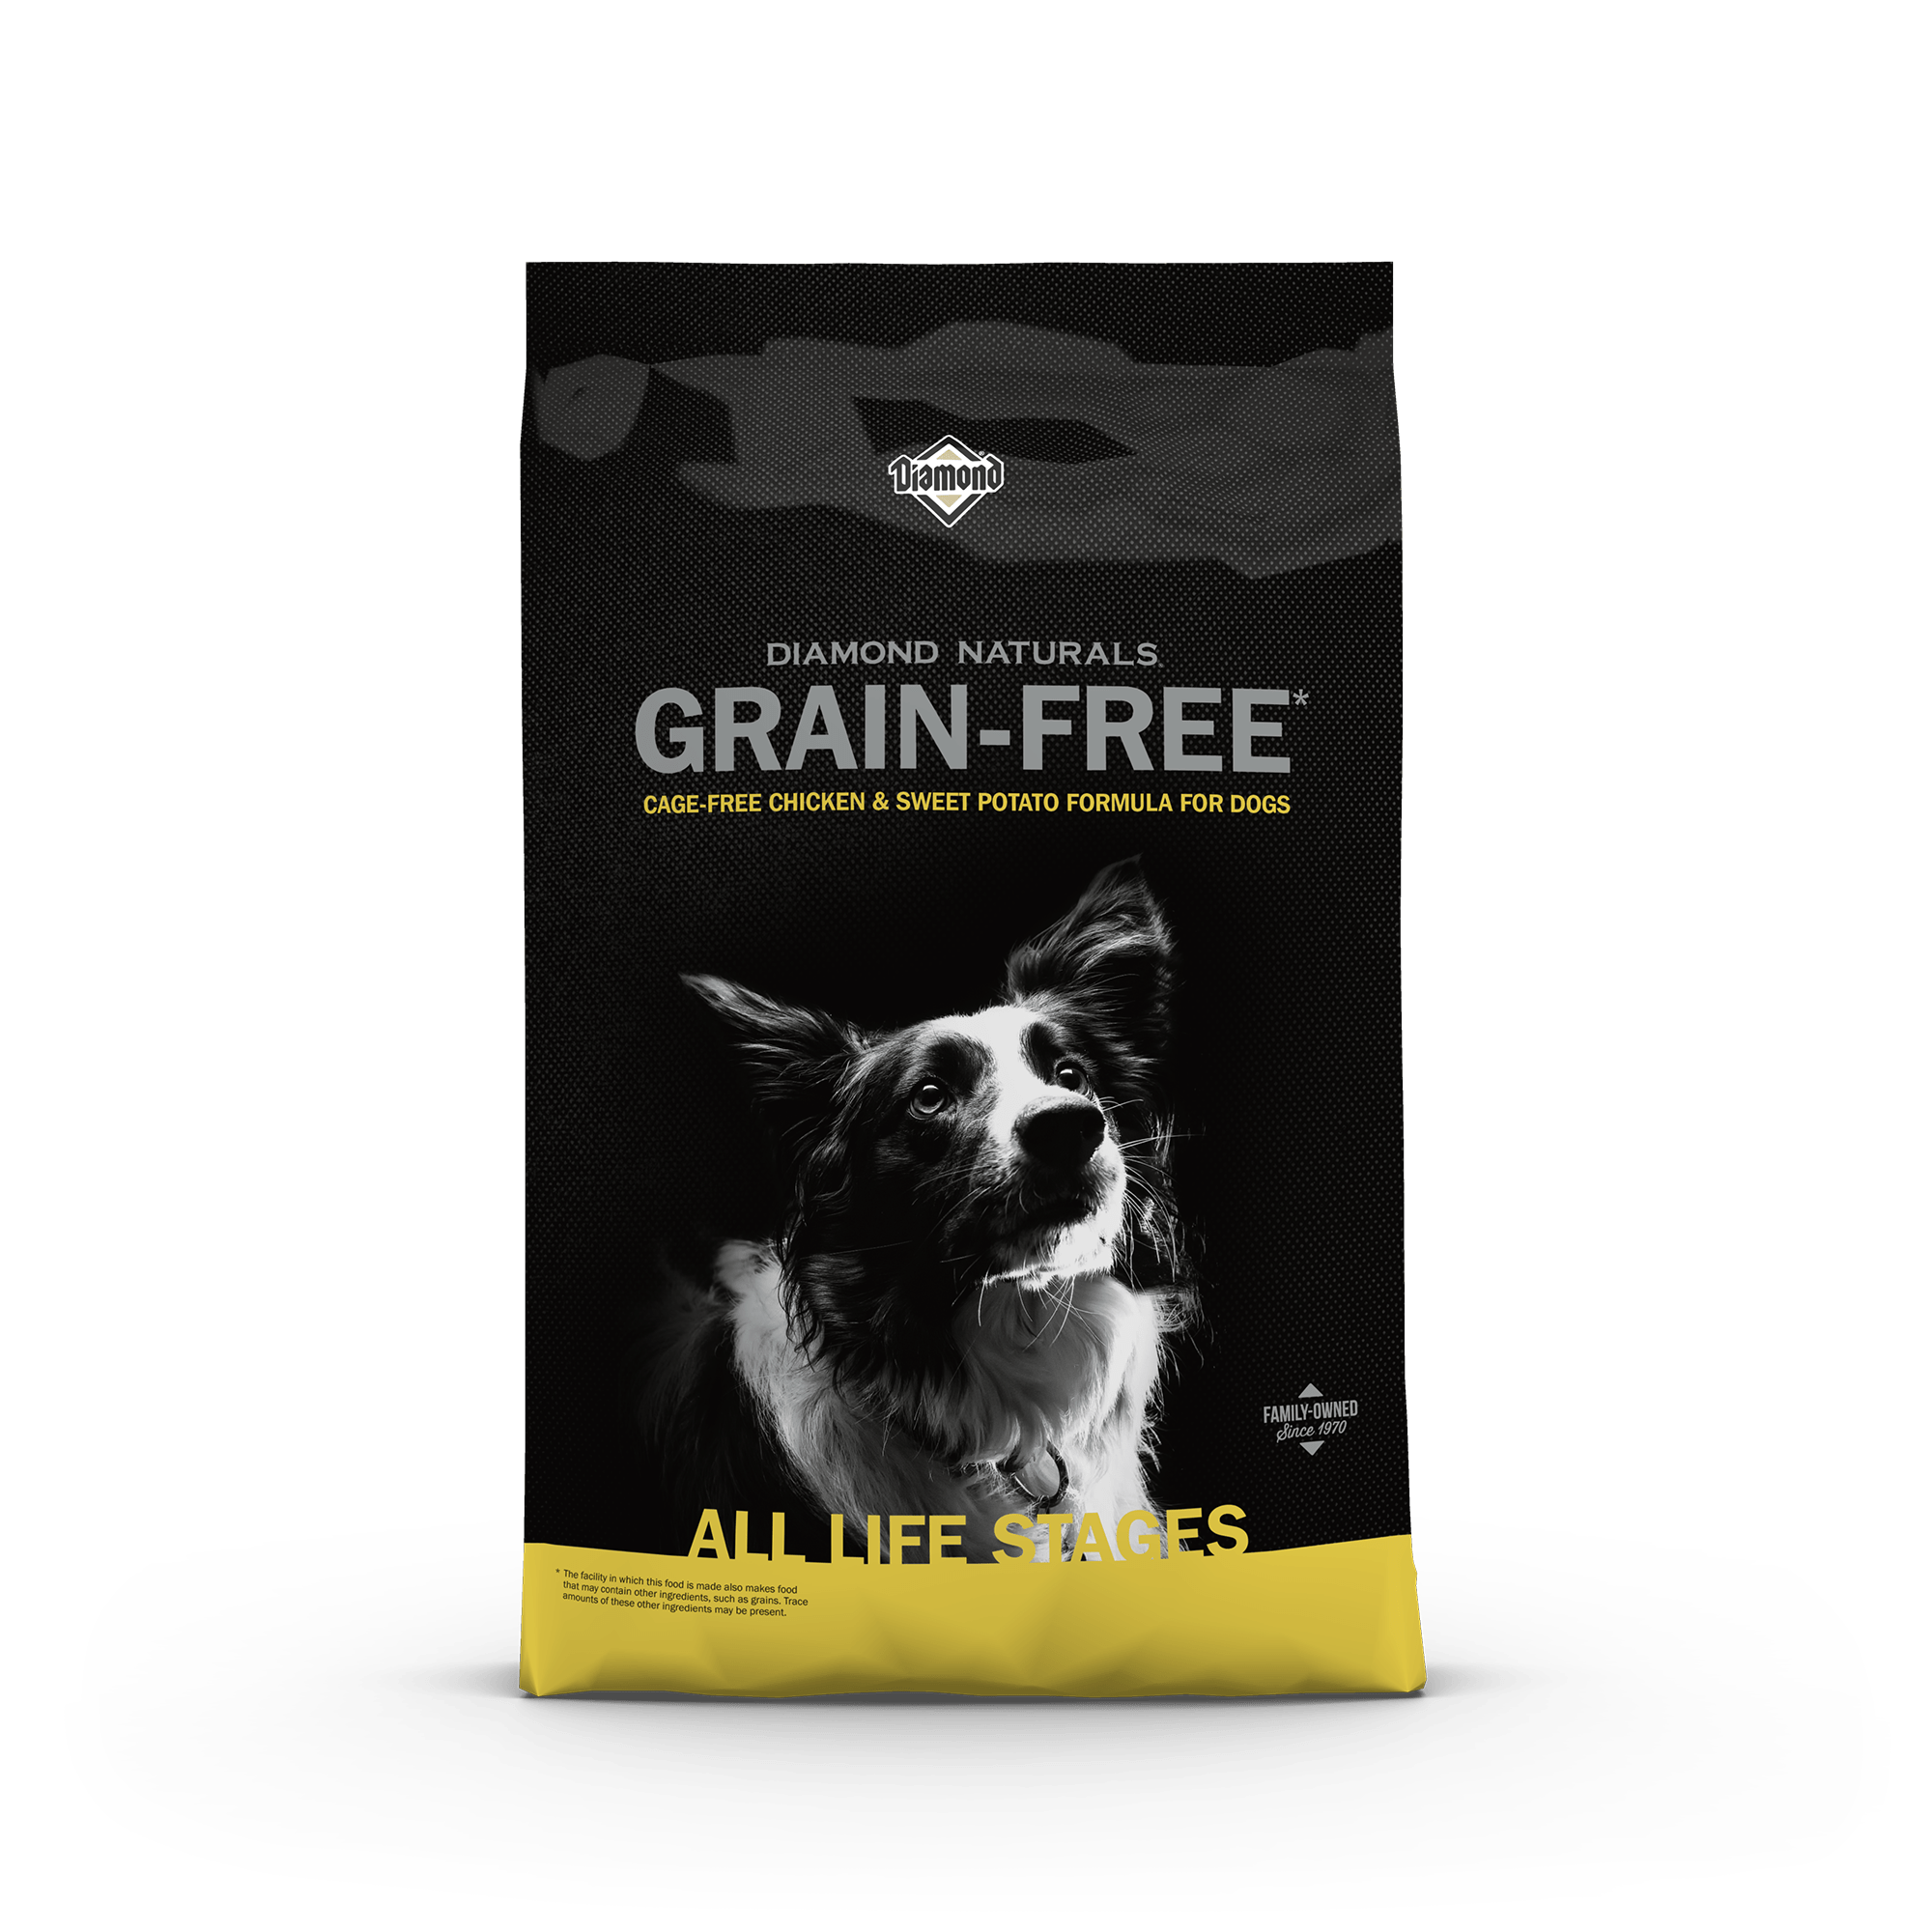 Diamond Naturals Grain-Free Cage-Free Chicken and Sweet Potato Formula for Dogs Bag Front | Diamond Pet Foods